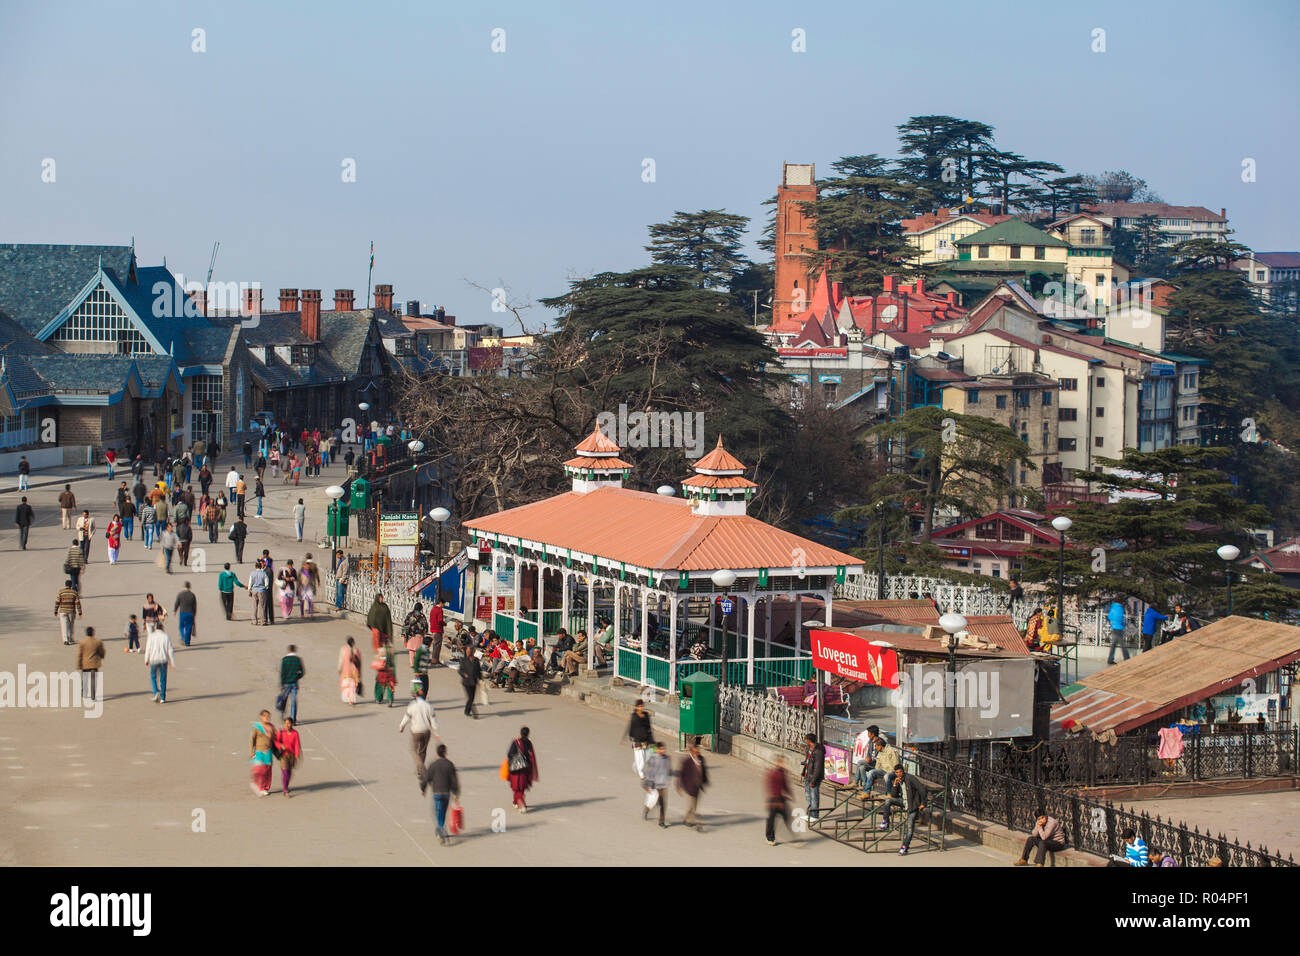 The Ridge, Shimla (Simla), Himachal Pradesh, India, Asia - Stock Image